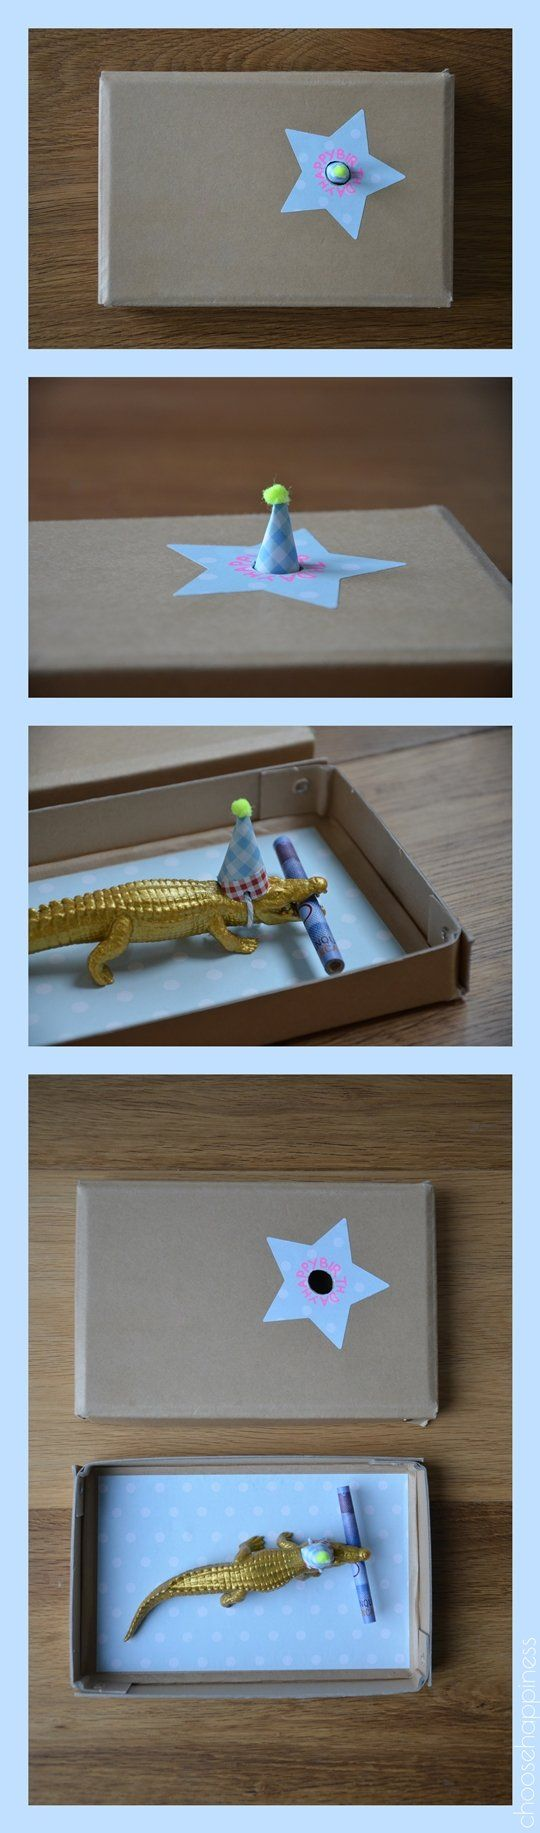 Fun announcement/kind/birthday/invitation message idea with clown,crocodile,mone… – archiparti.co – Interior & Architecture Design Services from HK/Hong Kong to the world